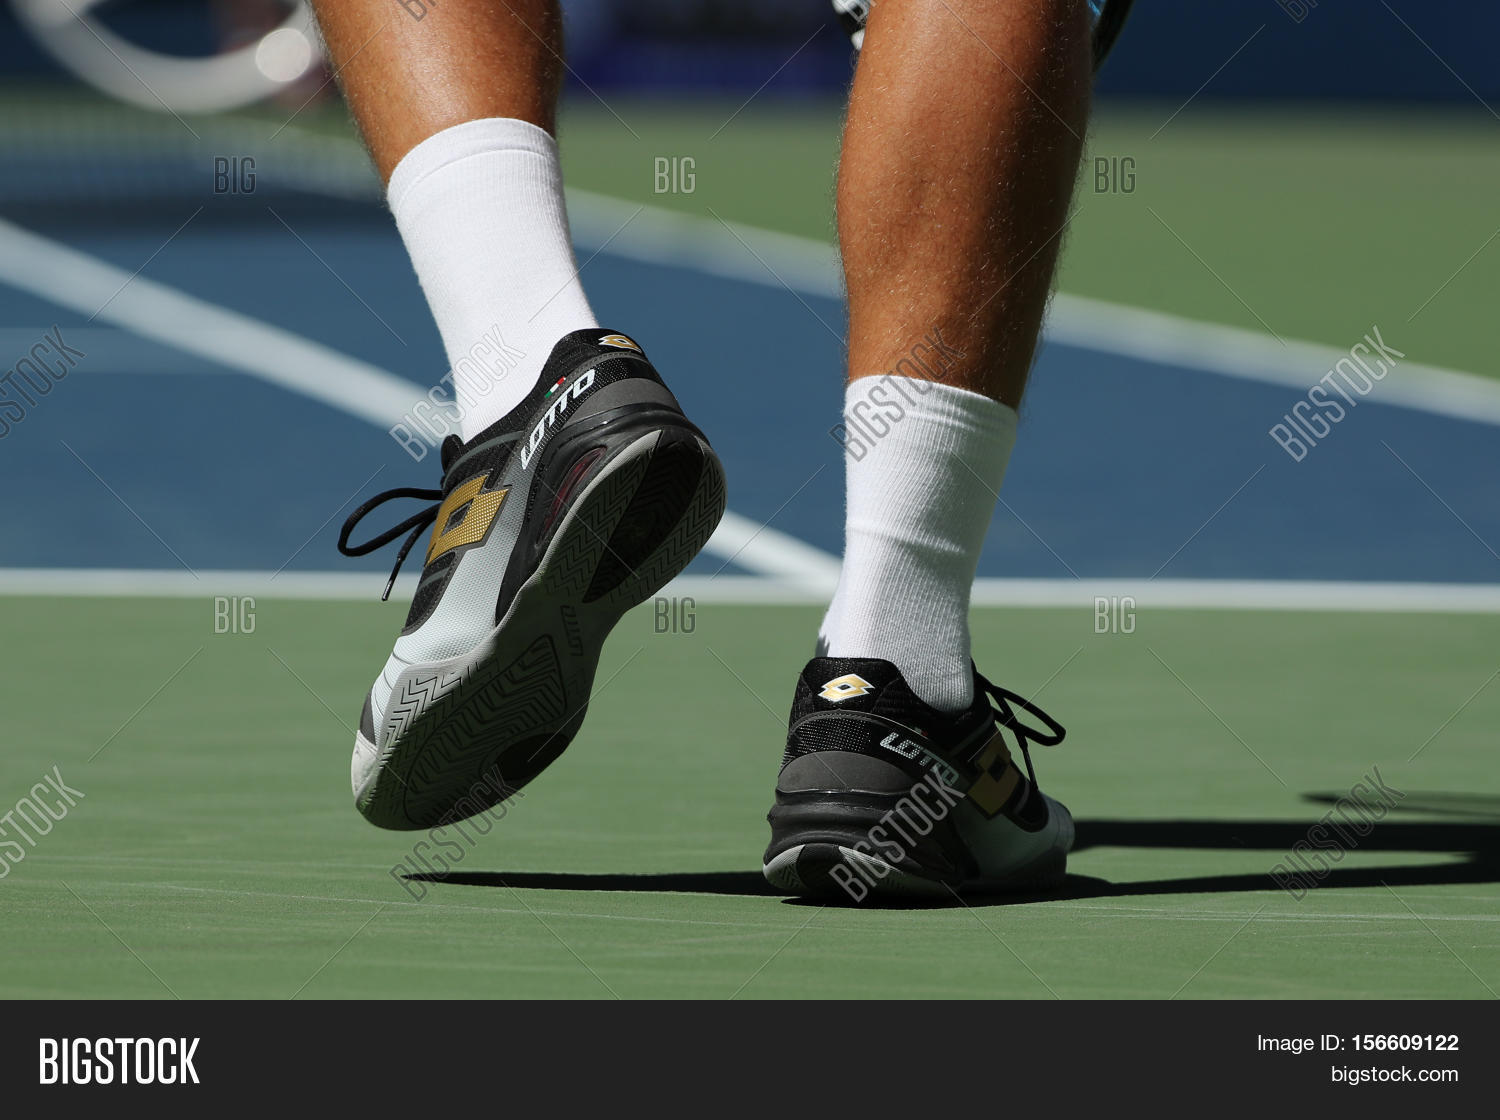 new york august 29 2016 professional tennis player